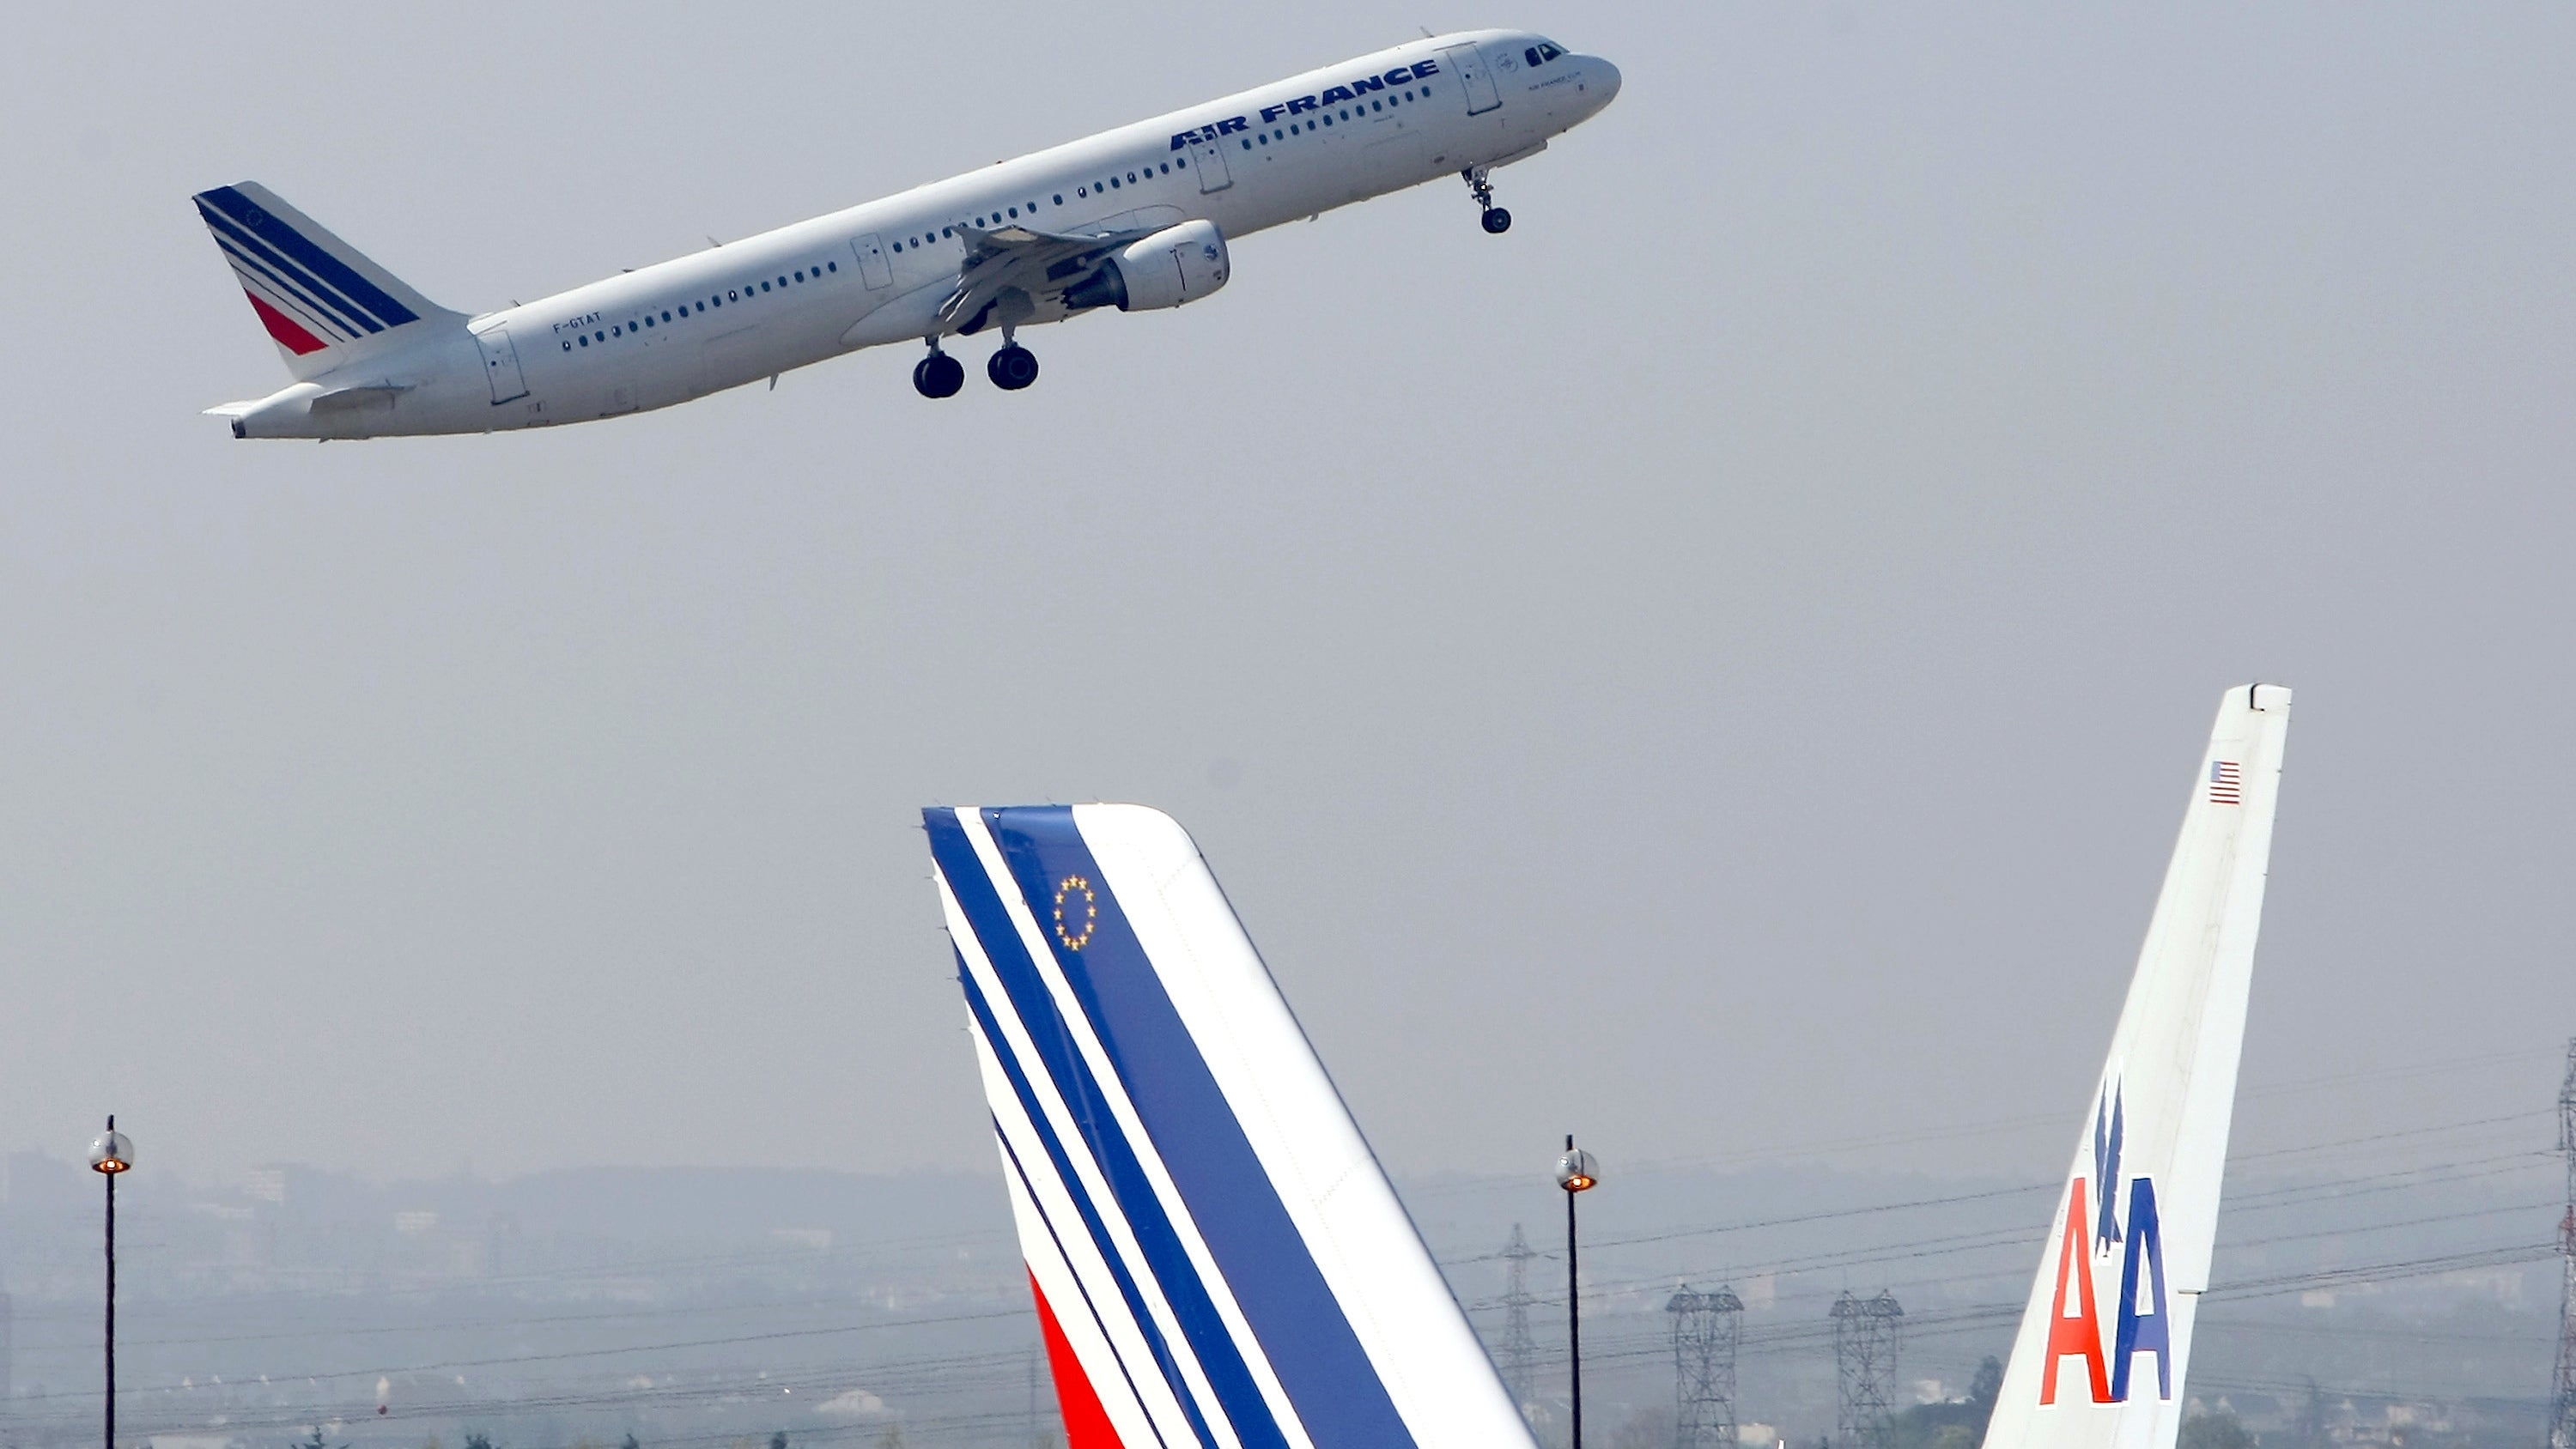 Air France Just Introduced a New Airline Geared Toward Millennials